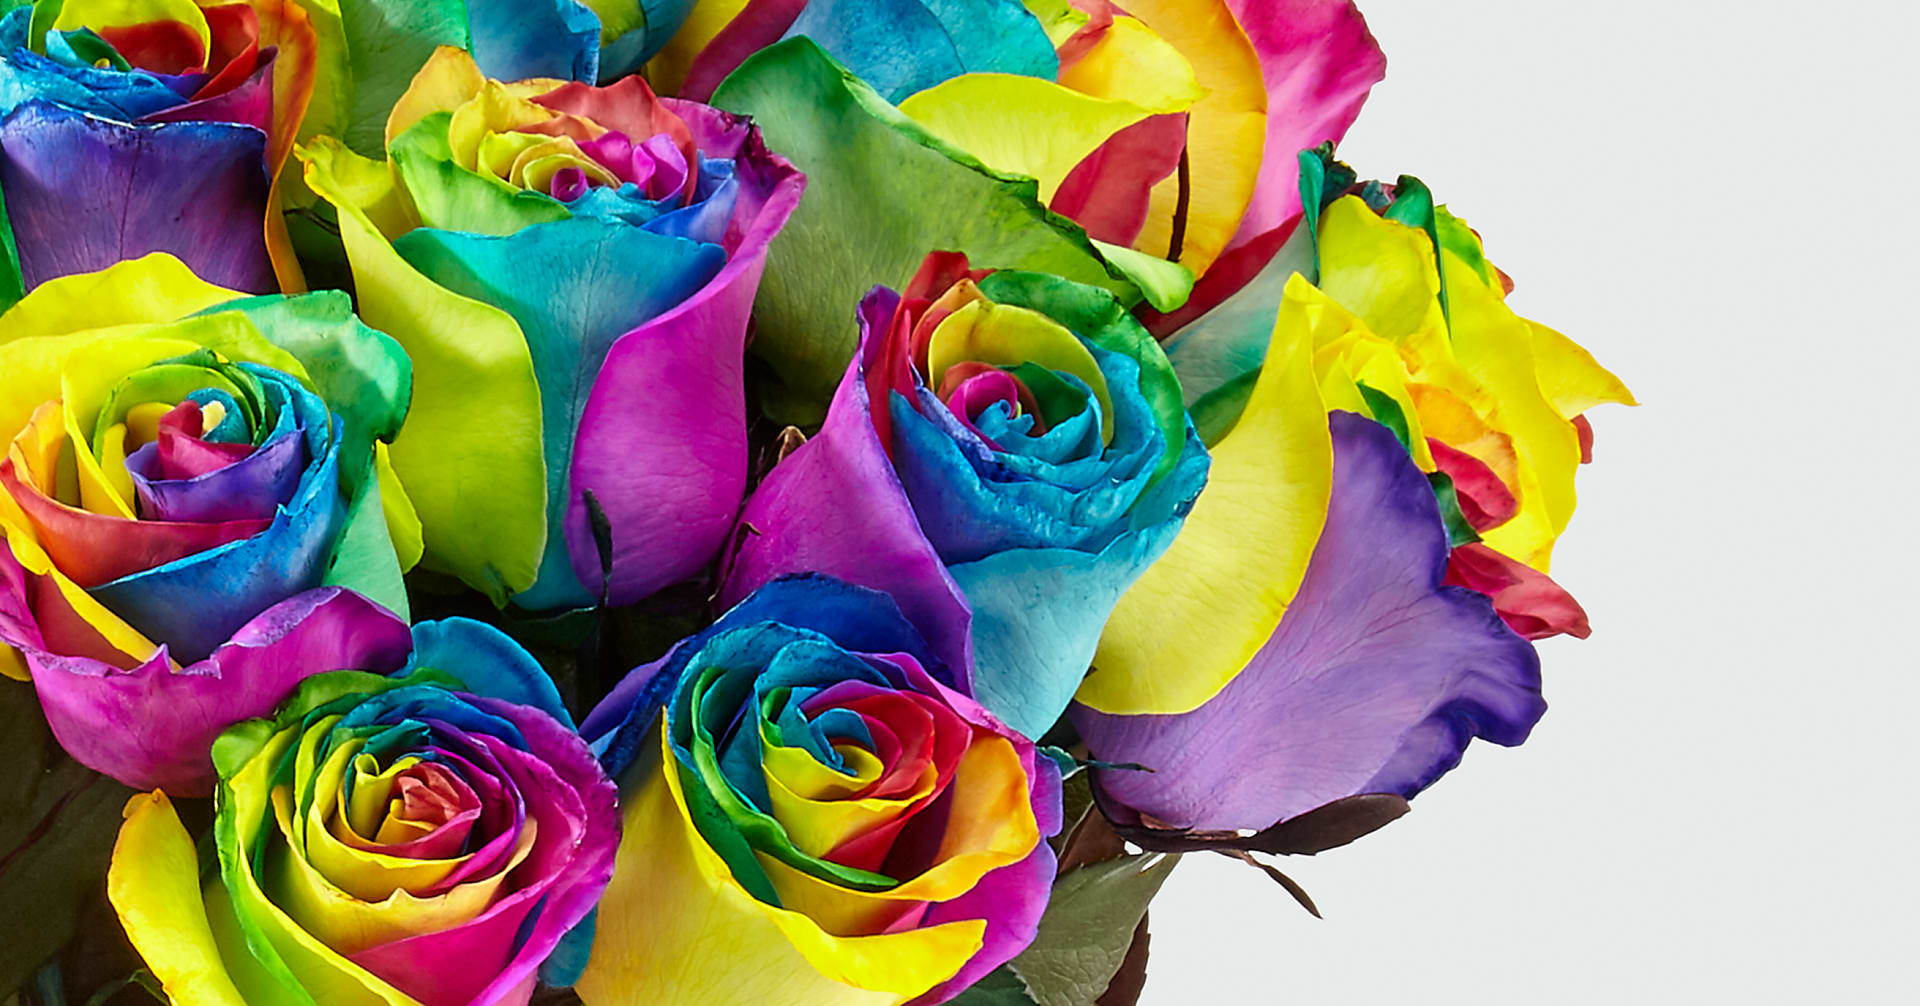 Time to Celebrate Rainbow Rose Bouquet - 24 Stems with Vase - Image 3 Of 4